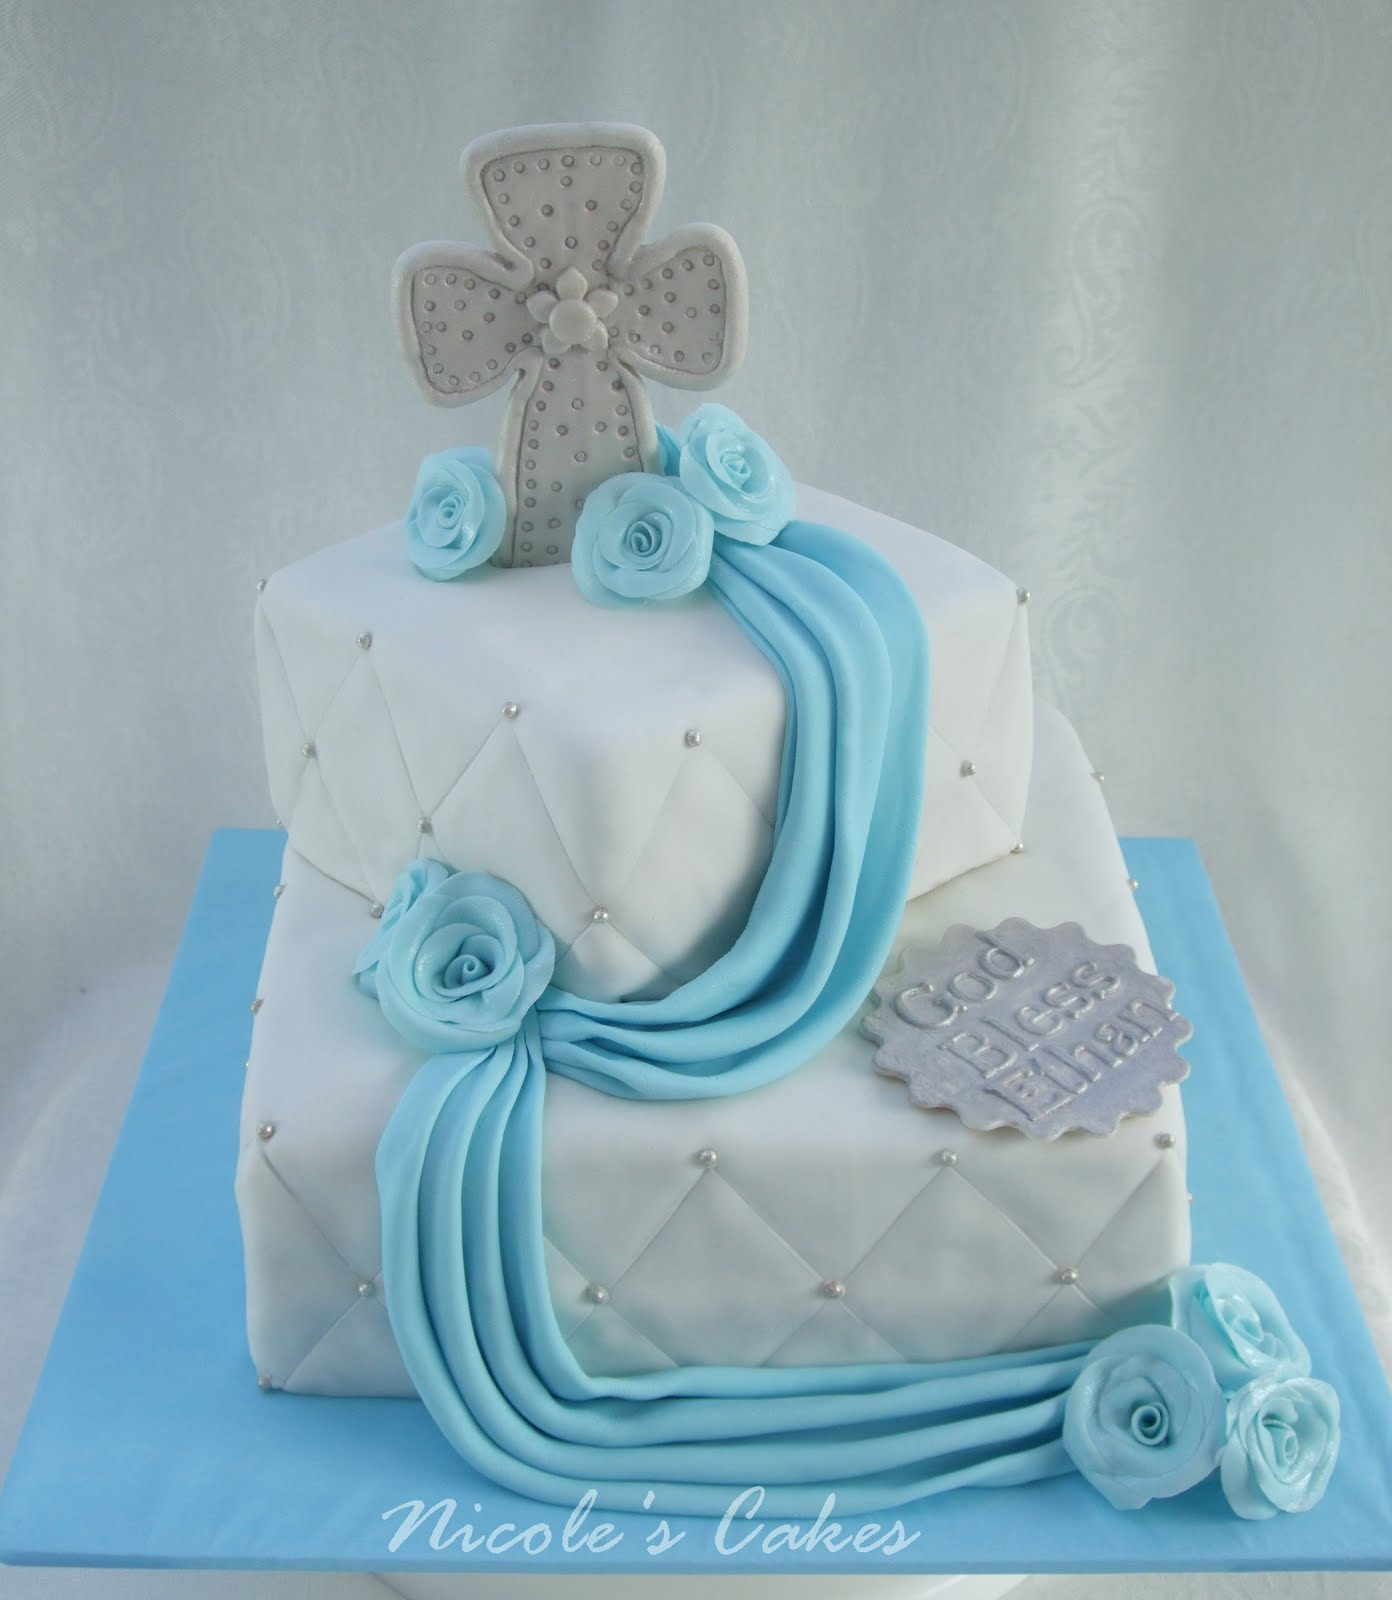 Christening Cake Designs For Baby Boy : On Birthday Cakes: Christening/Baptism Cake for a Baby Boy